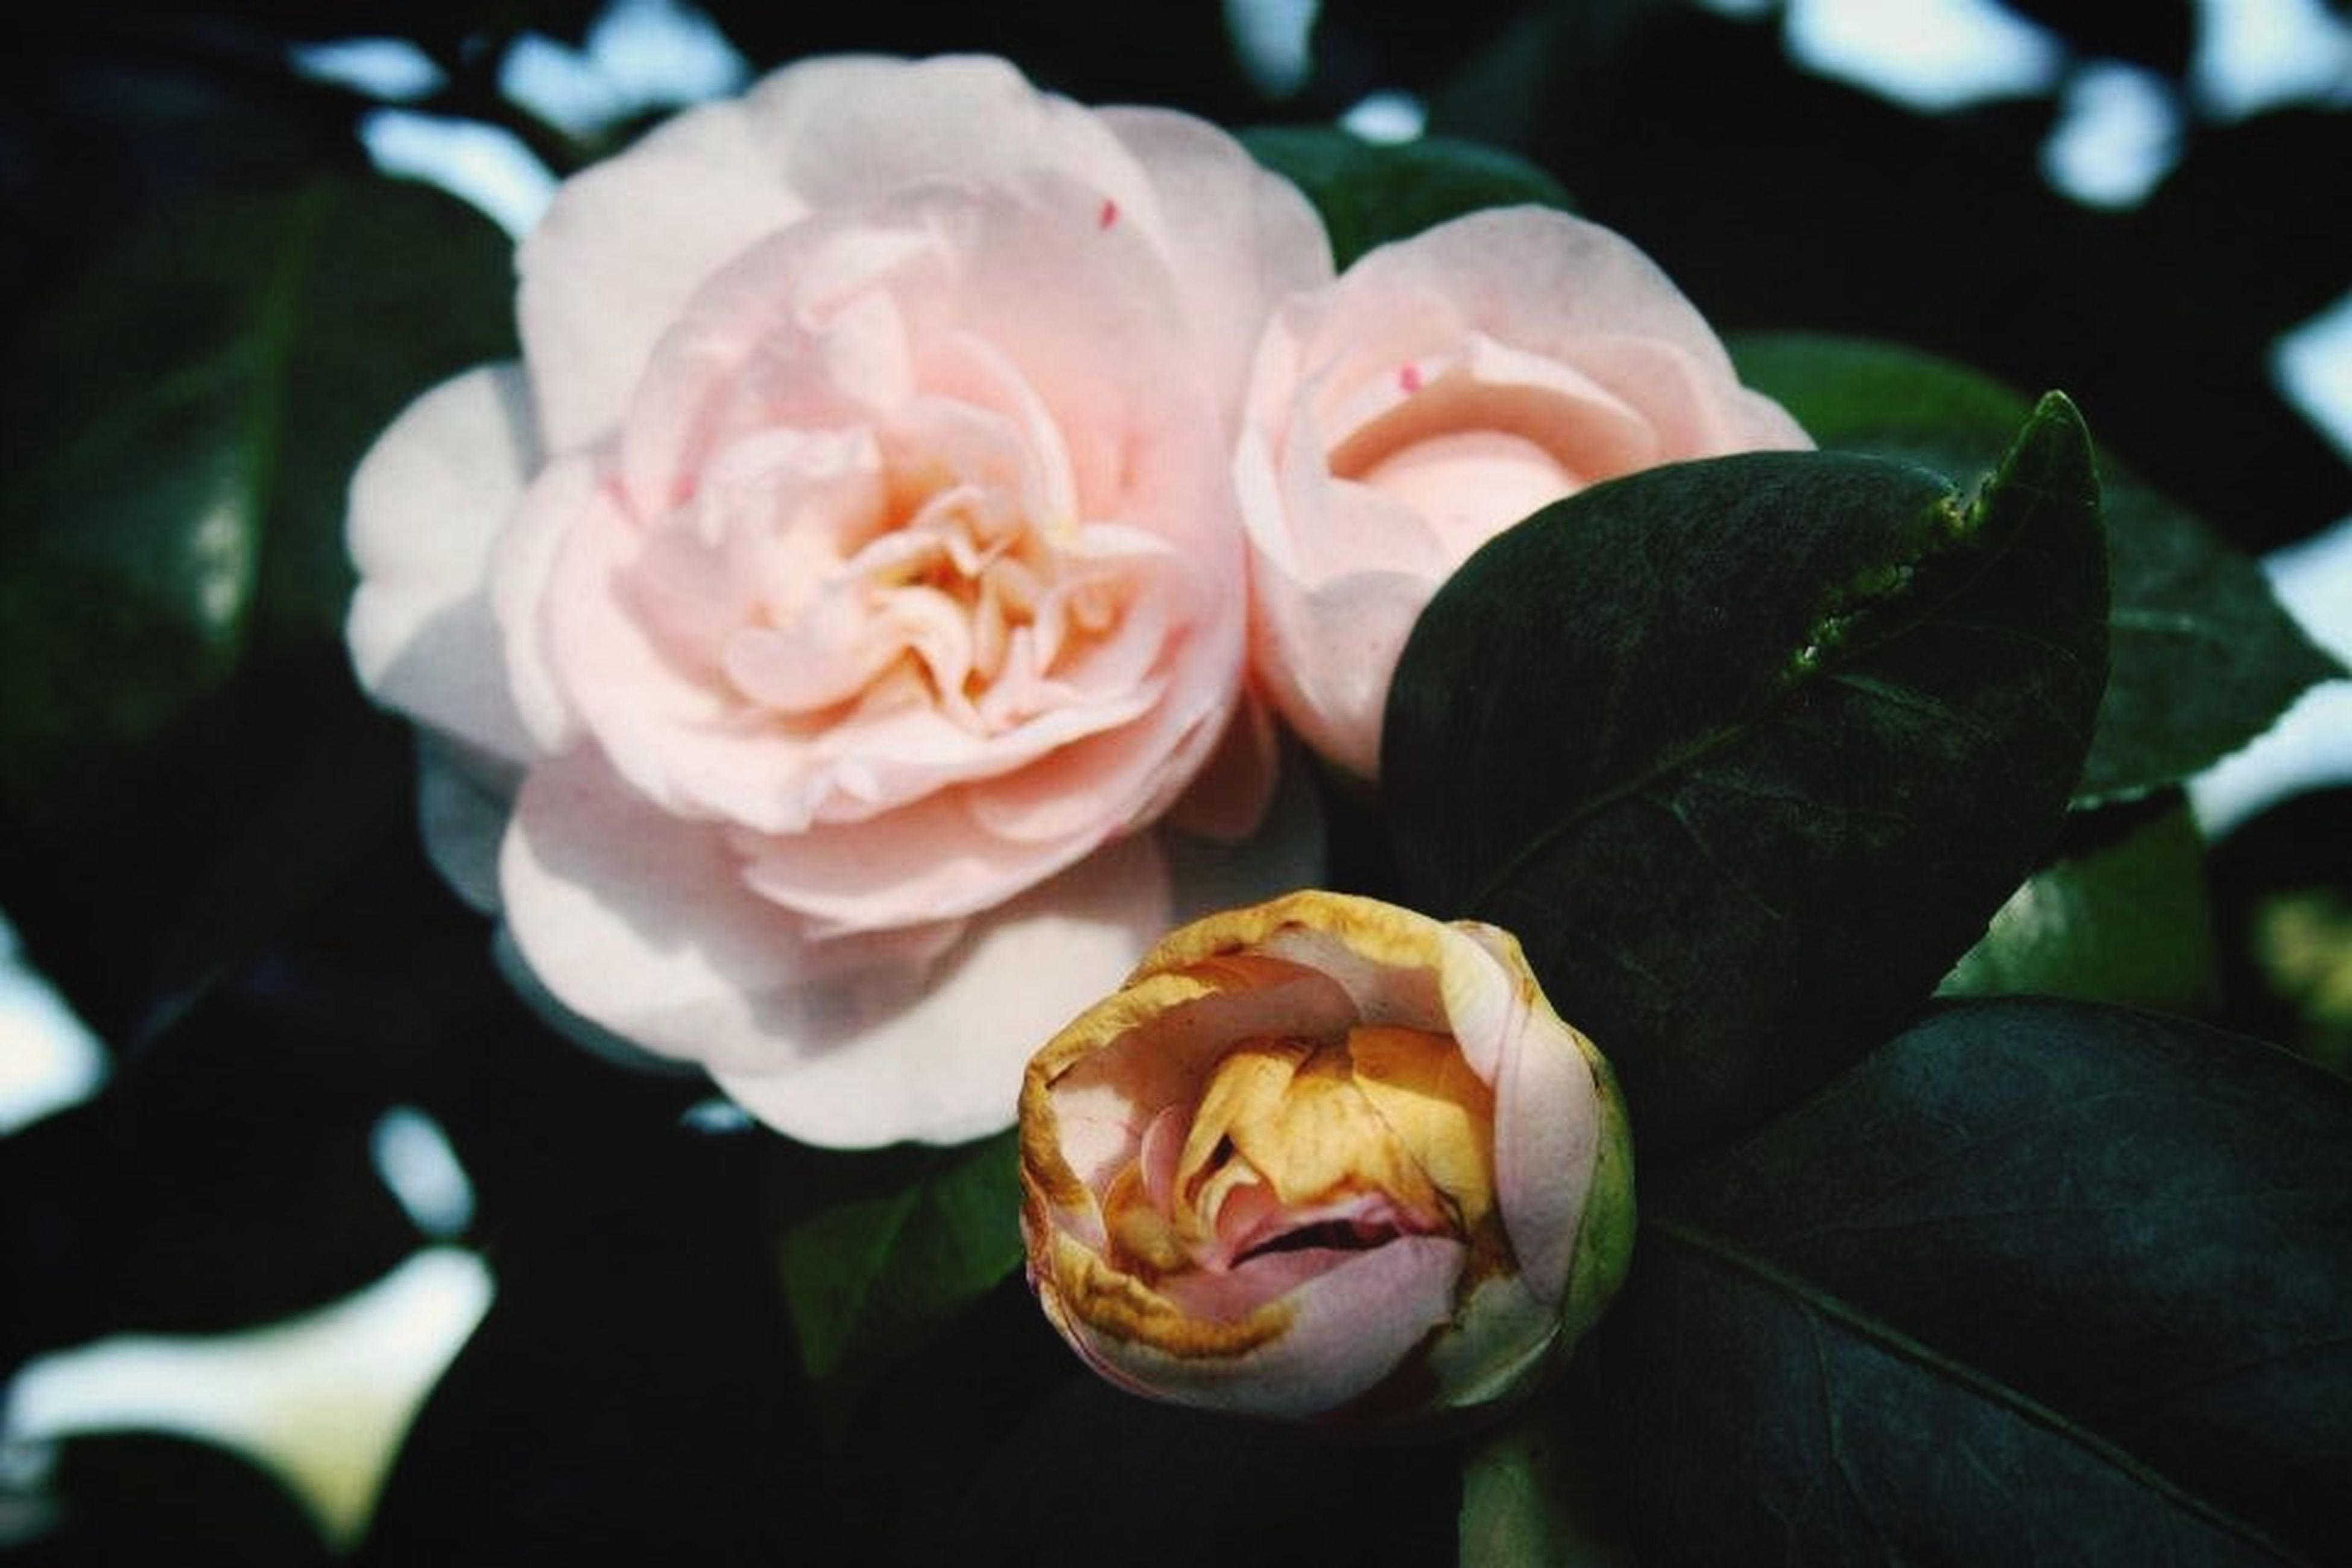 flower, petal, freshness, rose - flower, flower head, fragility, beauty in nature, close-up, growth, blooming, focus on foreground, nature, rose, single flower, in bloom, plant, pink color, park - man made space, outdoors, day